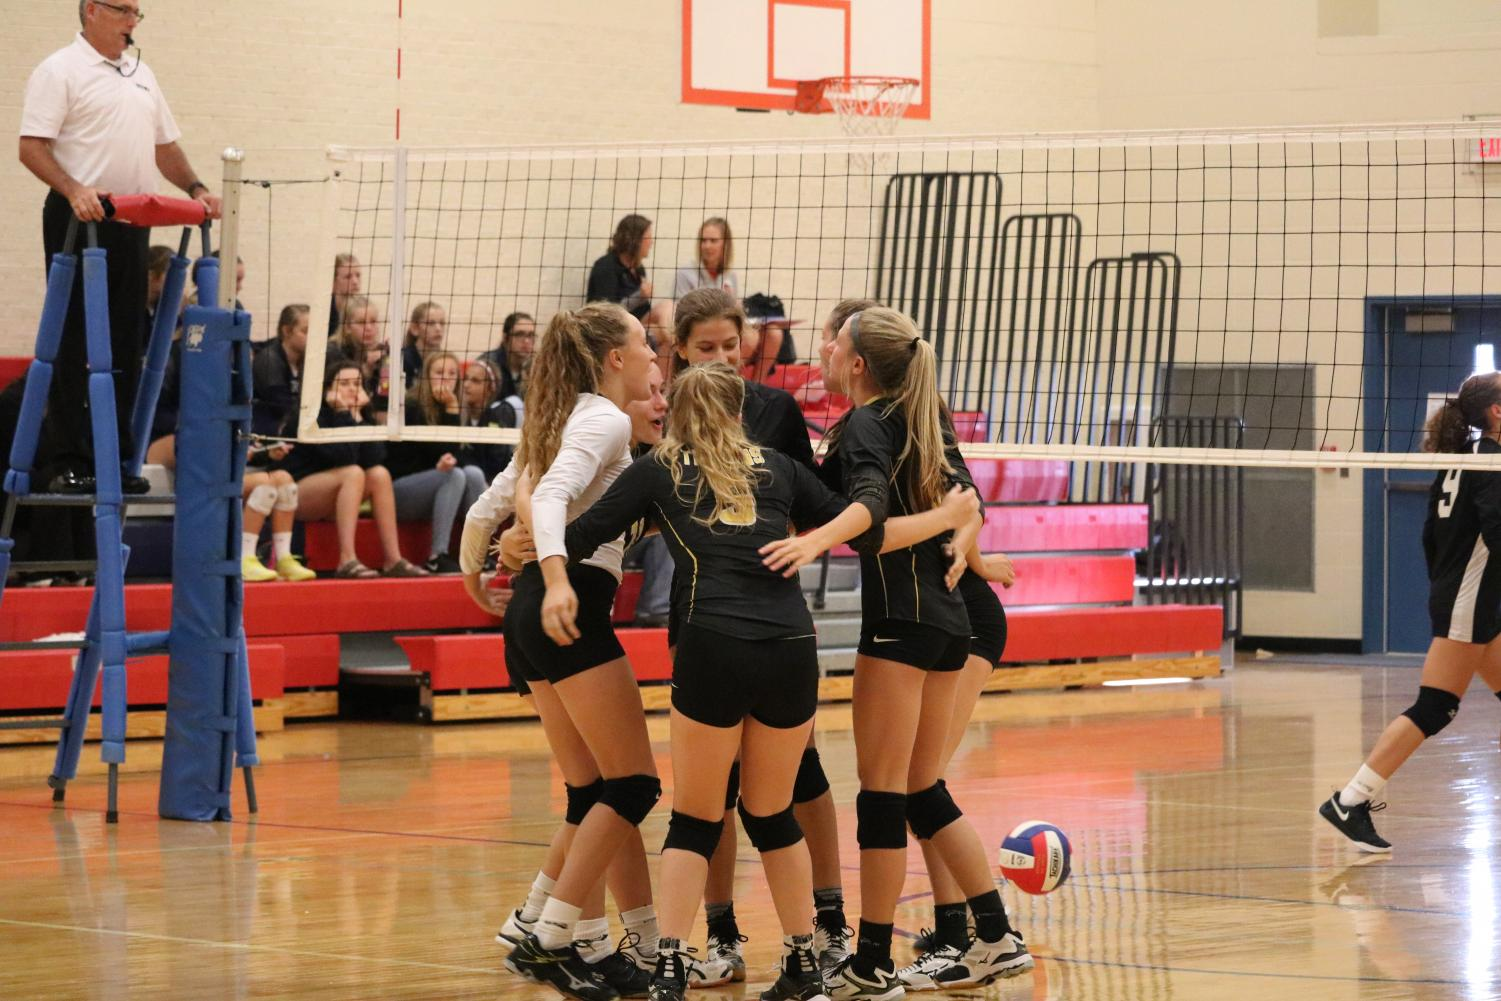 The Trojan volleyball team cheers one another on at a competition last season. The girls came in second in the ACGC quad on Tuesday.